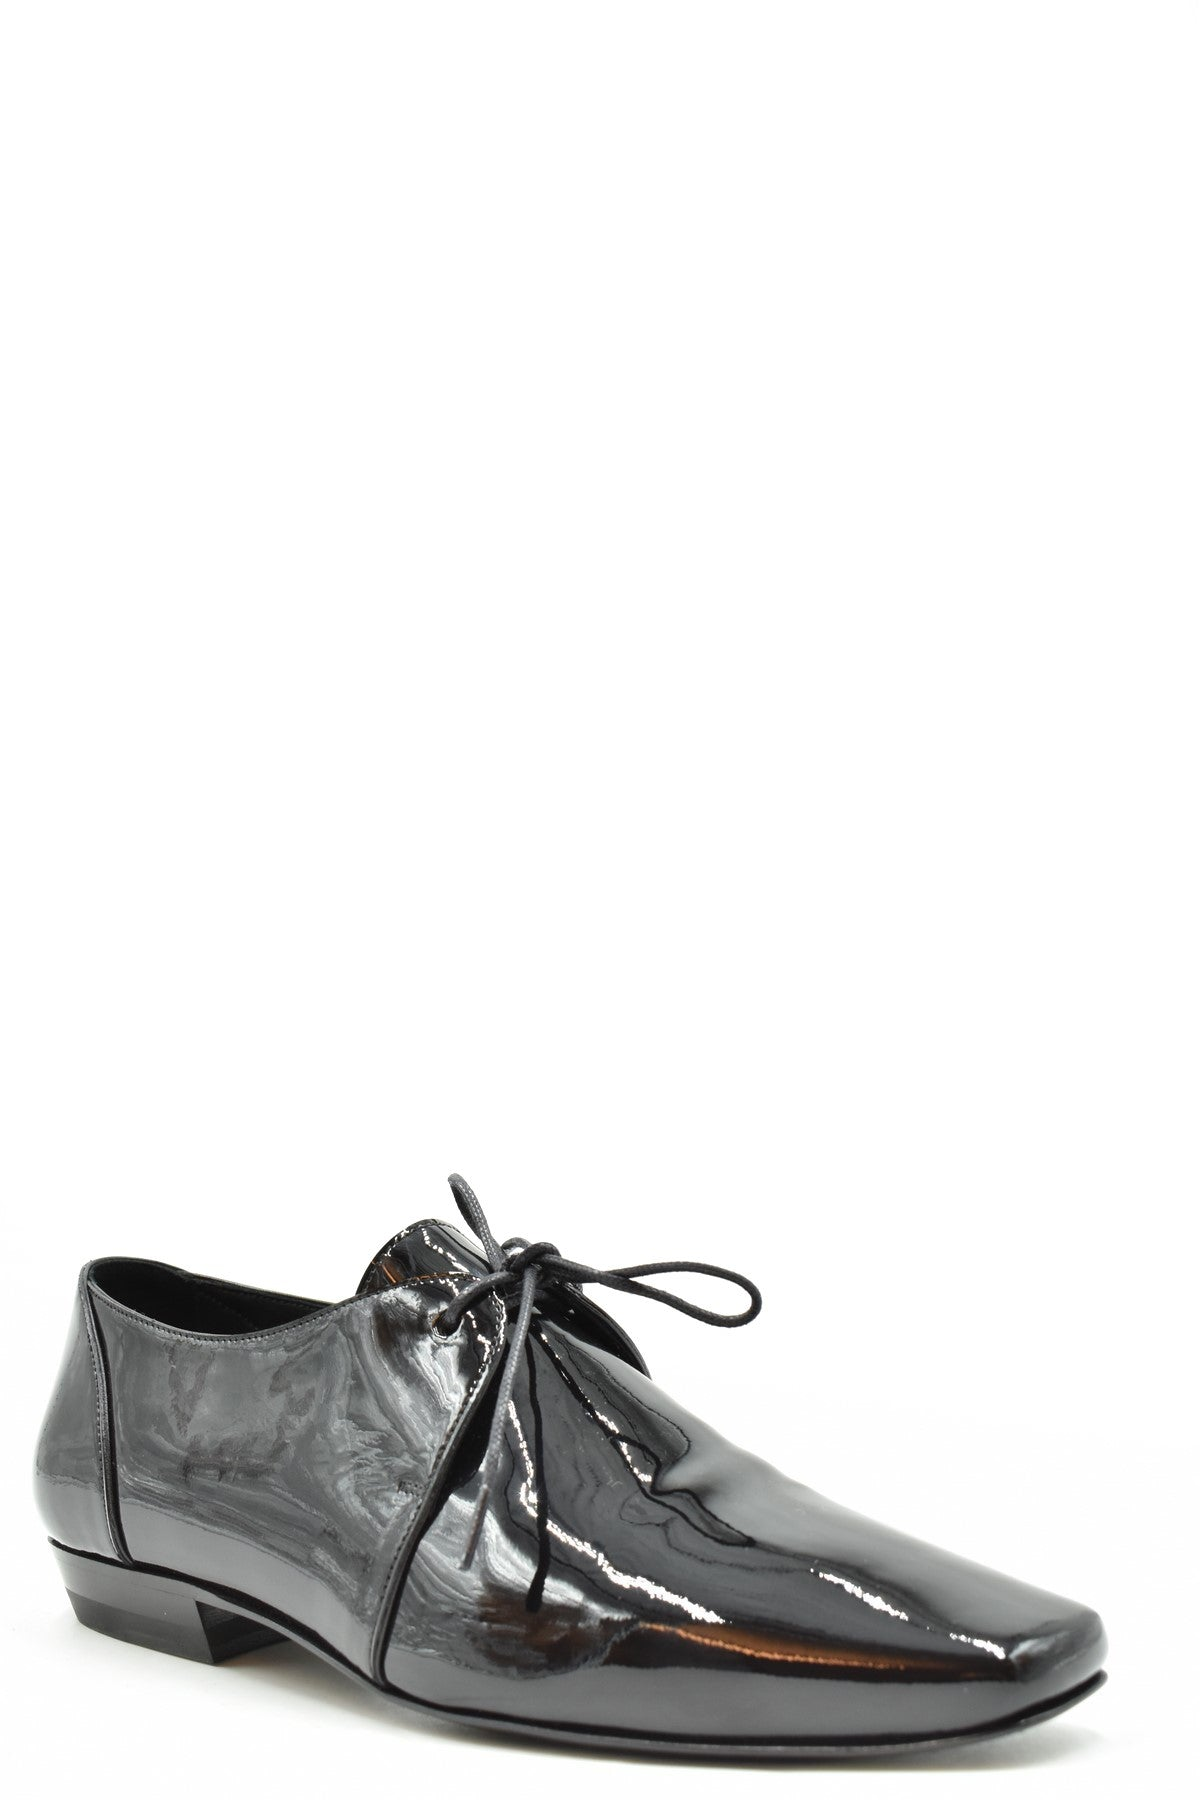 Shoes Saint Laurent-Women's Fashion - Women's Shoes - Women's Flats-36.5-Product Details Terms: New With LabelMain Color: BlackType Of Accessory: ShoesSeason: Fall / WinterMade In: ItalyGender: WomanSize: EuComposition: Dye 100%Year: 2020Manufacturer Part Number: I53S90421517-Keyomi-Sook